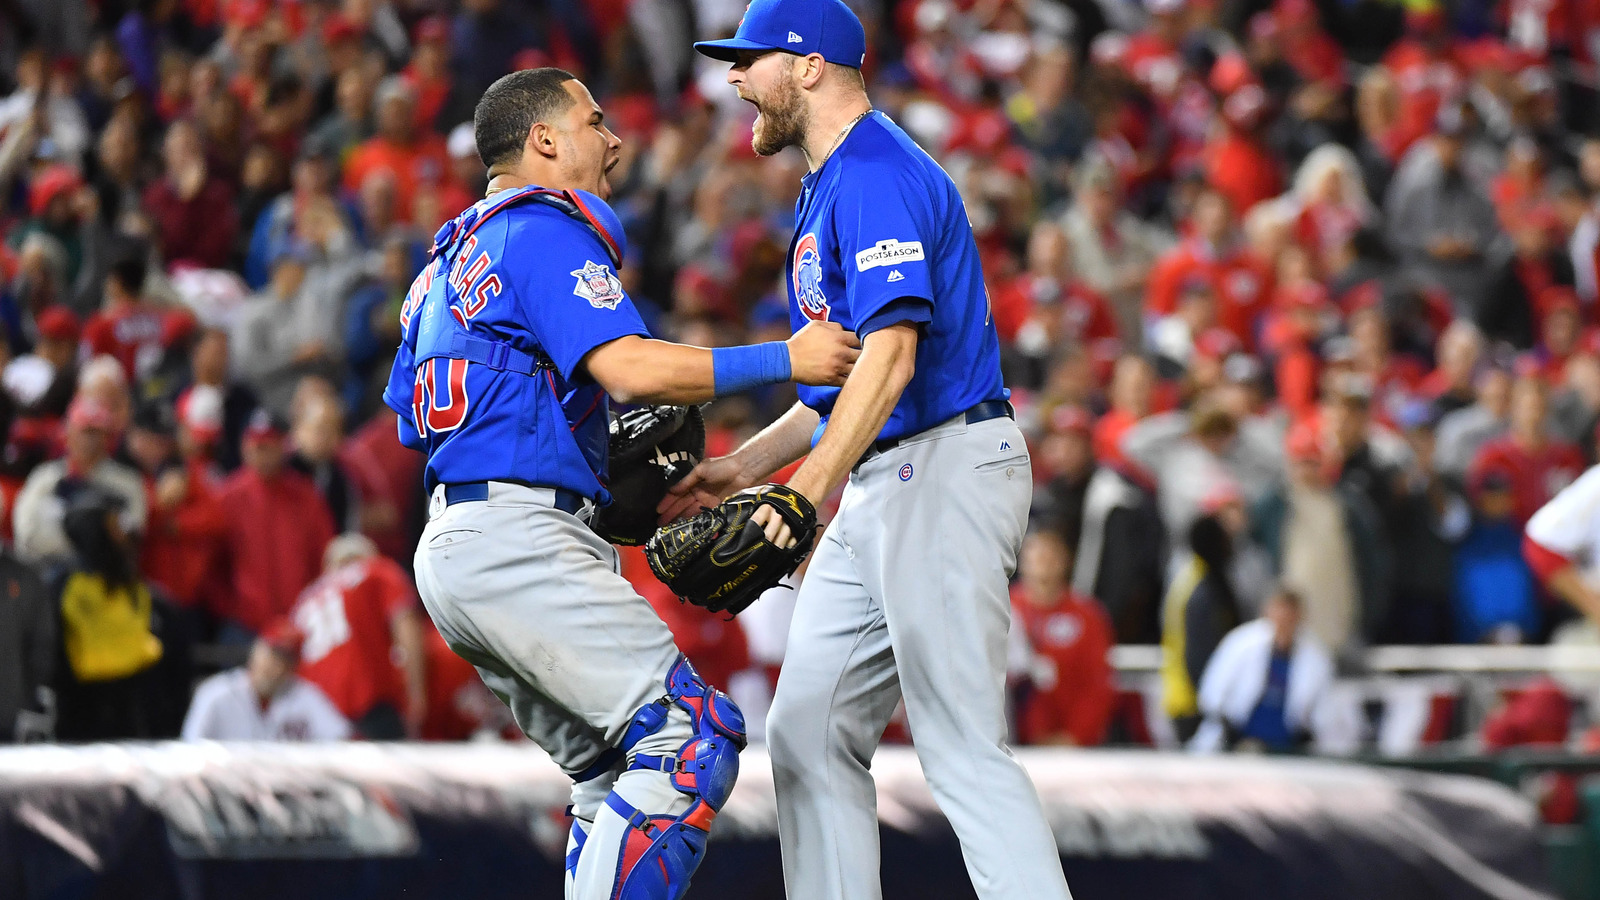 Cubs reach NLCS and add to Nats' tale of playoff woe